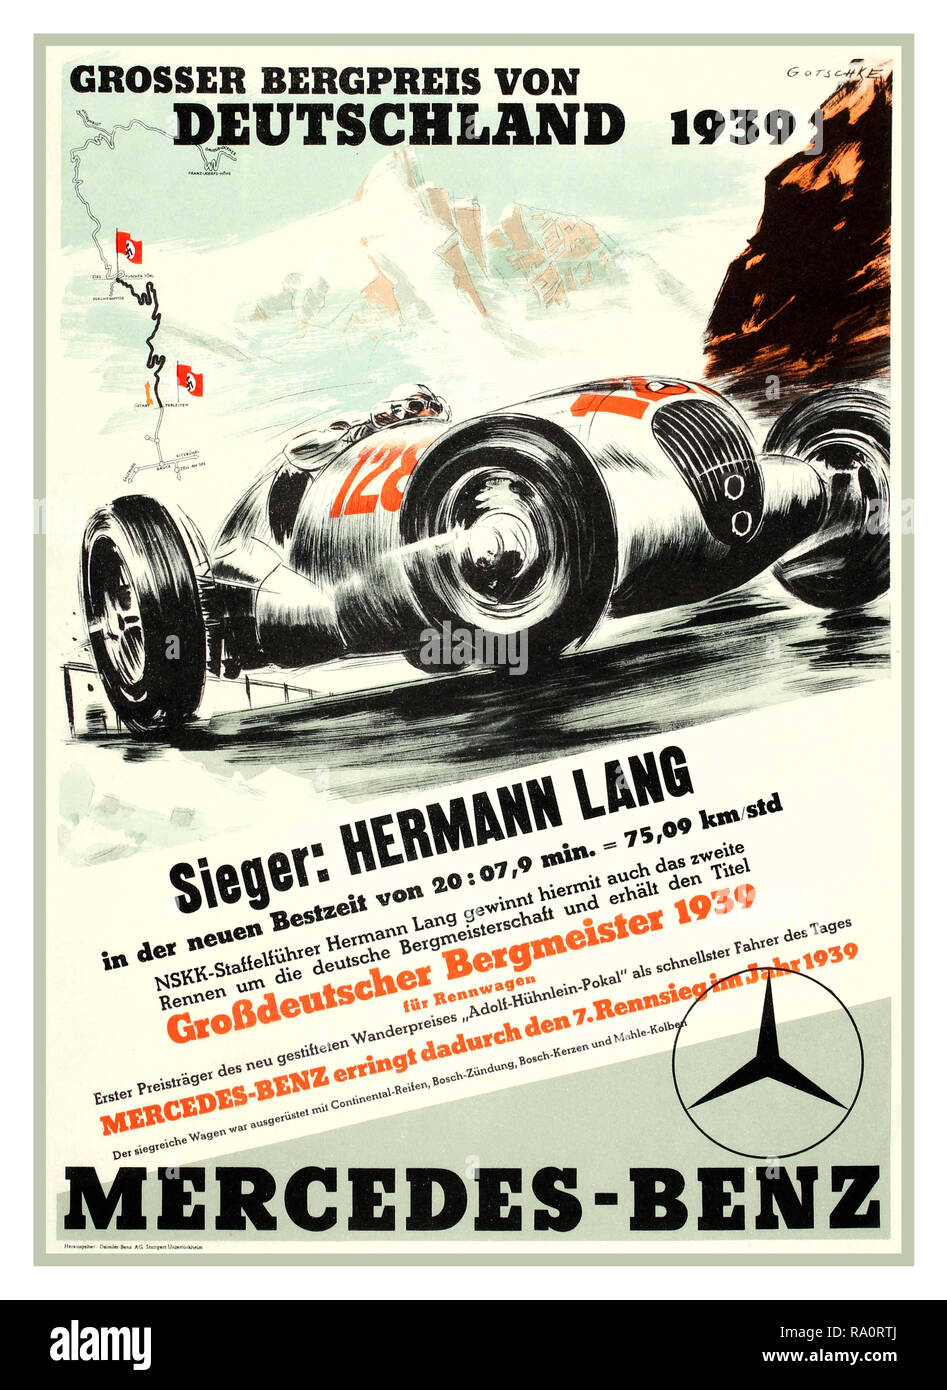 Vintage 1930's German Motor Racing Poster with Nazi Swastika start-finish flags  'Grosser Bergpreis Von Deutschland 1939' - A Mercedes Benz vintage motorsport poster promoting Mercedes-Benz at the German mountain race, 'Grosser Bergpreis Von Deutschland 1939', featuring prominent German race driver Hermann Lang driving a Number 128 Mercedes  'Silver Arrow' (Silberpfeil) It was the name given by enthusiasts and the motoring press to Germany's supreme commanding Mercedes-Benz Grand Prix motor racing cars in the 1930's - Stock Image